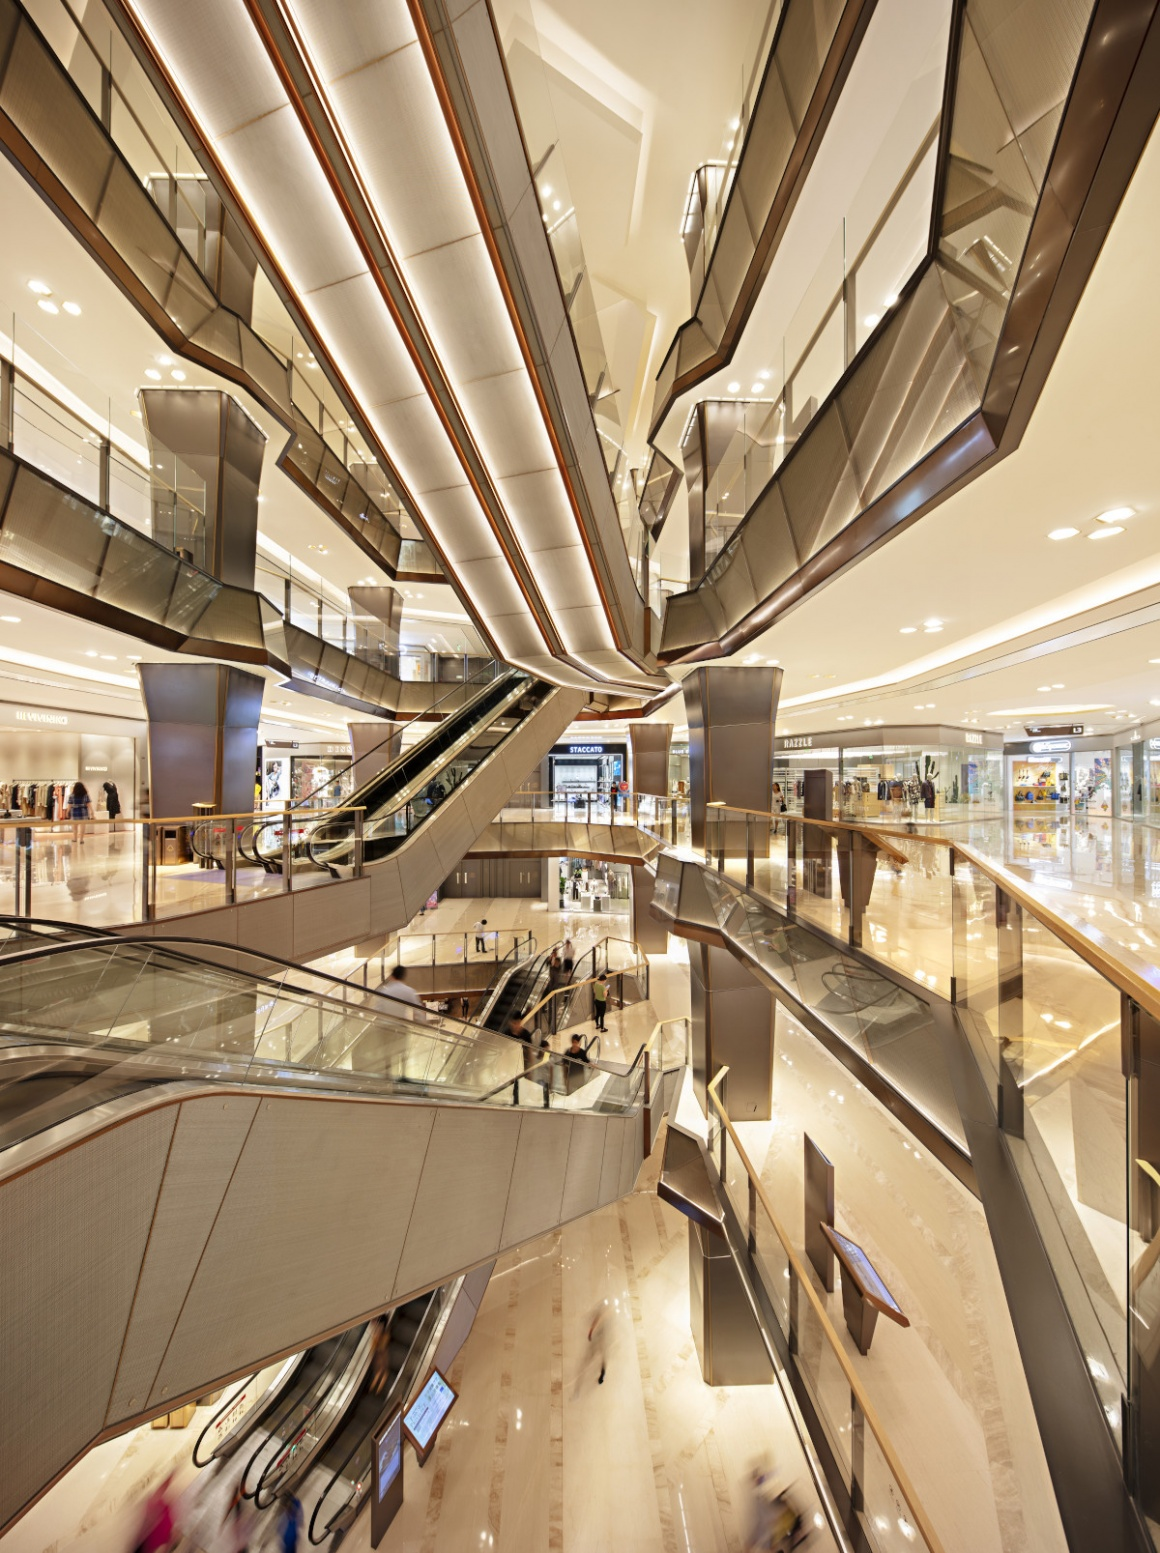 The interior of a shopping center with modern design and escalators...